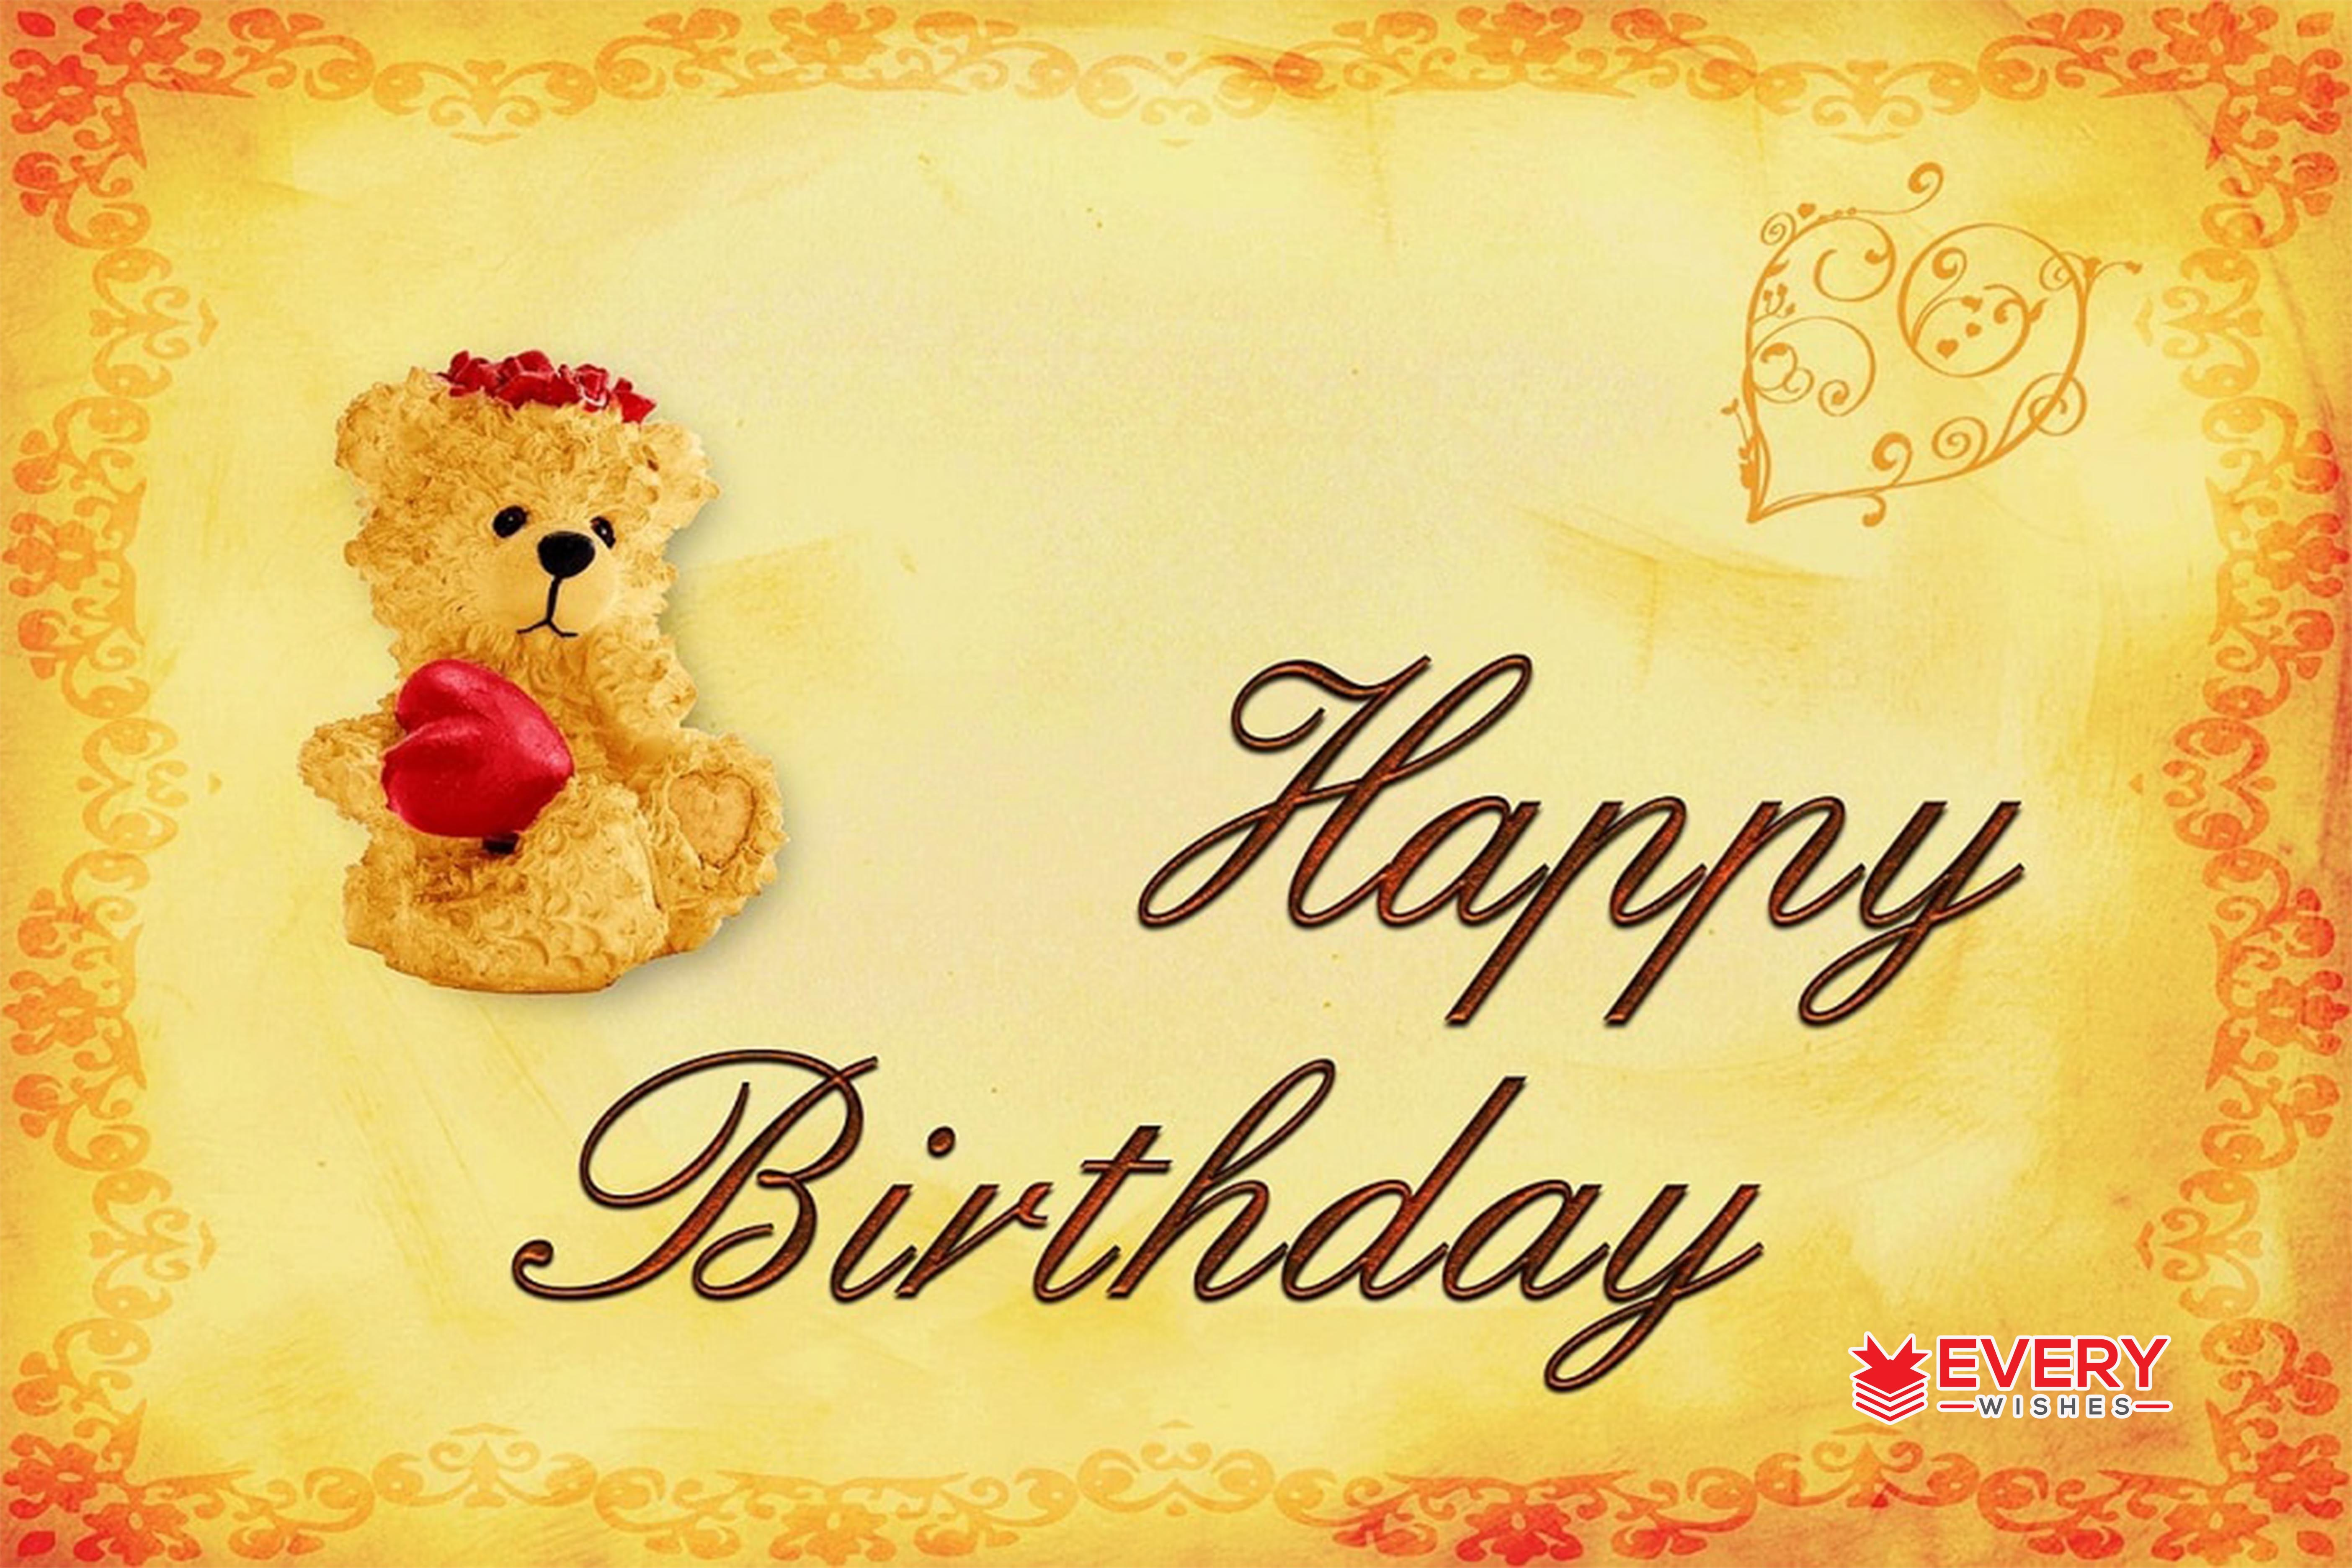 birth day wishes images ; featured-image-4-1